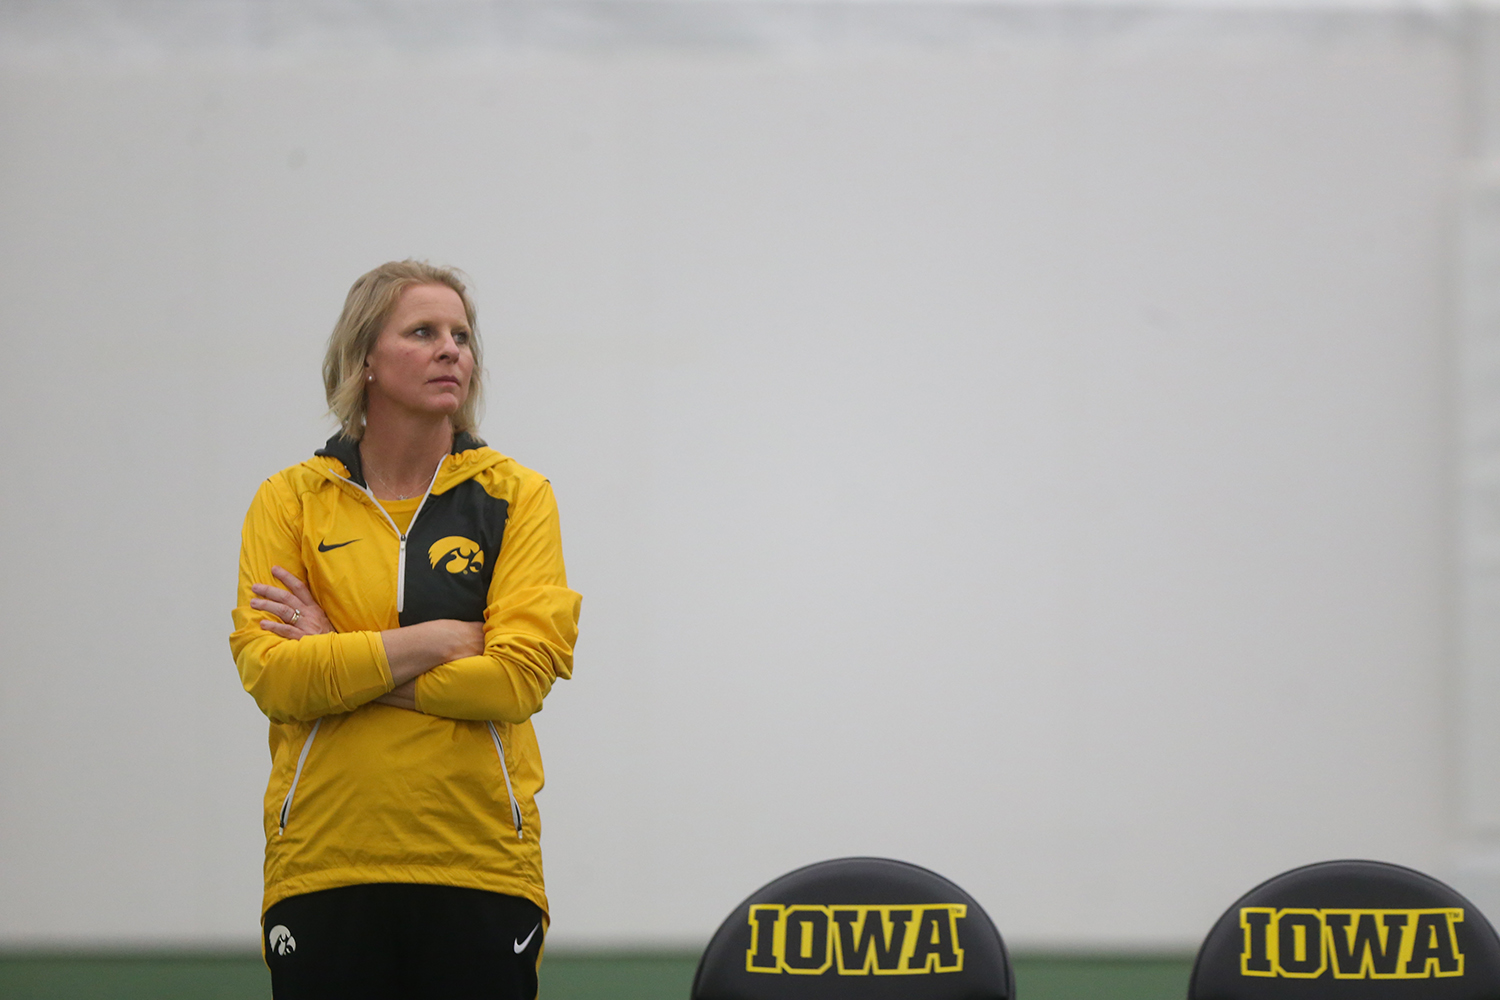 Iowa head coach Sasha Schmid watches a match during the Iowa-Creighton match at the Hawkeye Tennis and Recreation Complex on Saturday, Jan. 21, 2017. The Hawkeyes defeated the Blue Jays, 7-0.